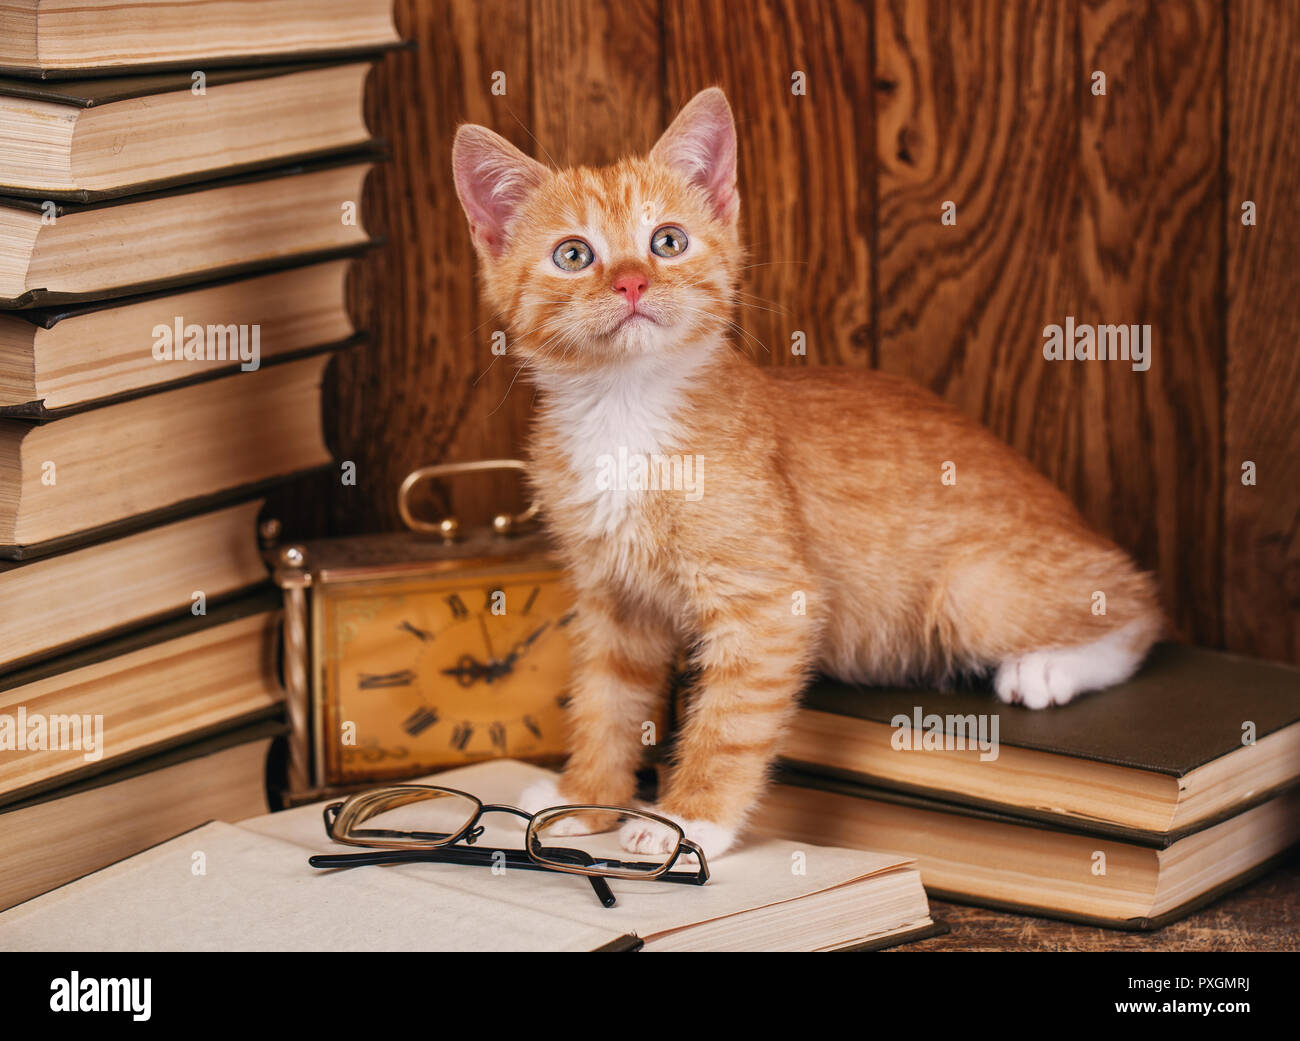 Kitty stands on books near the glasses - Stock Image